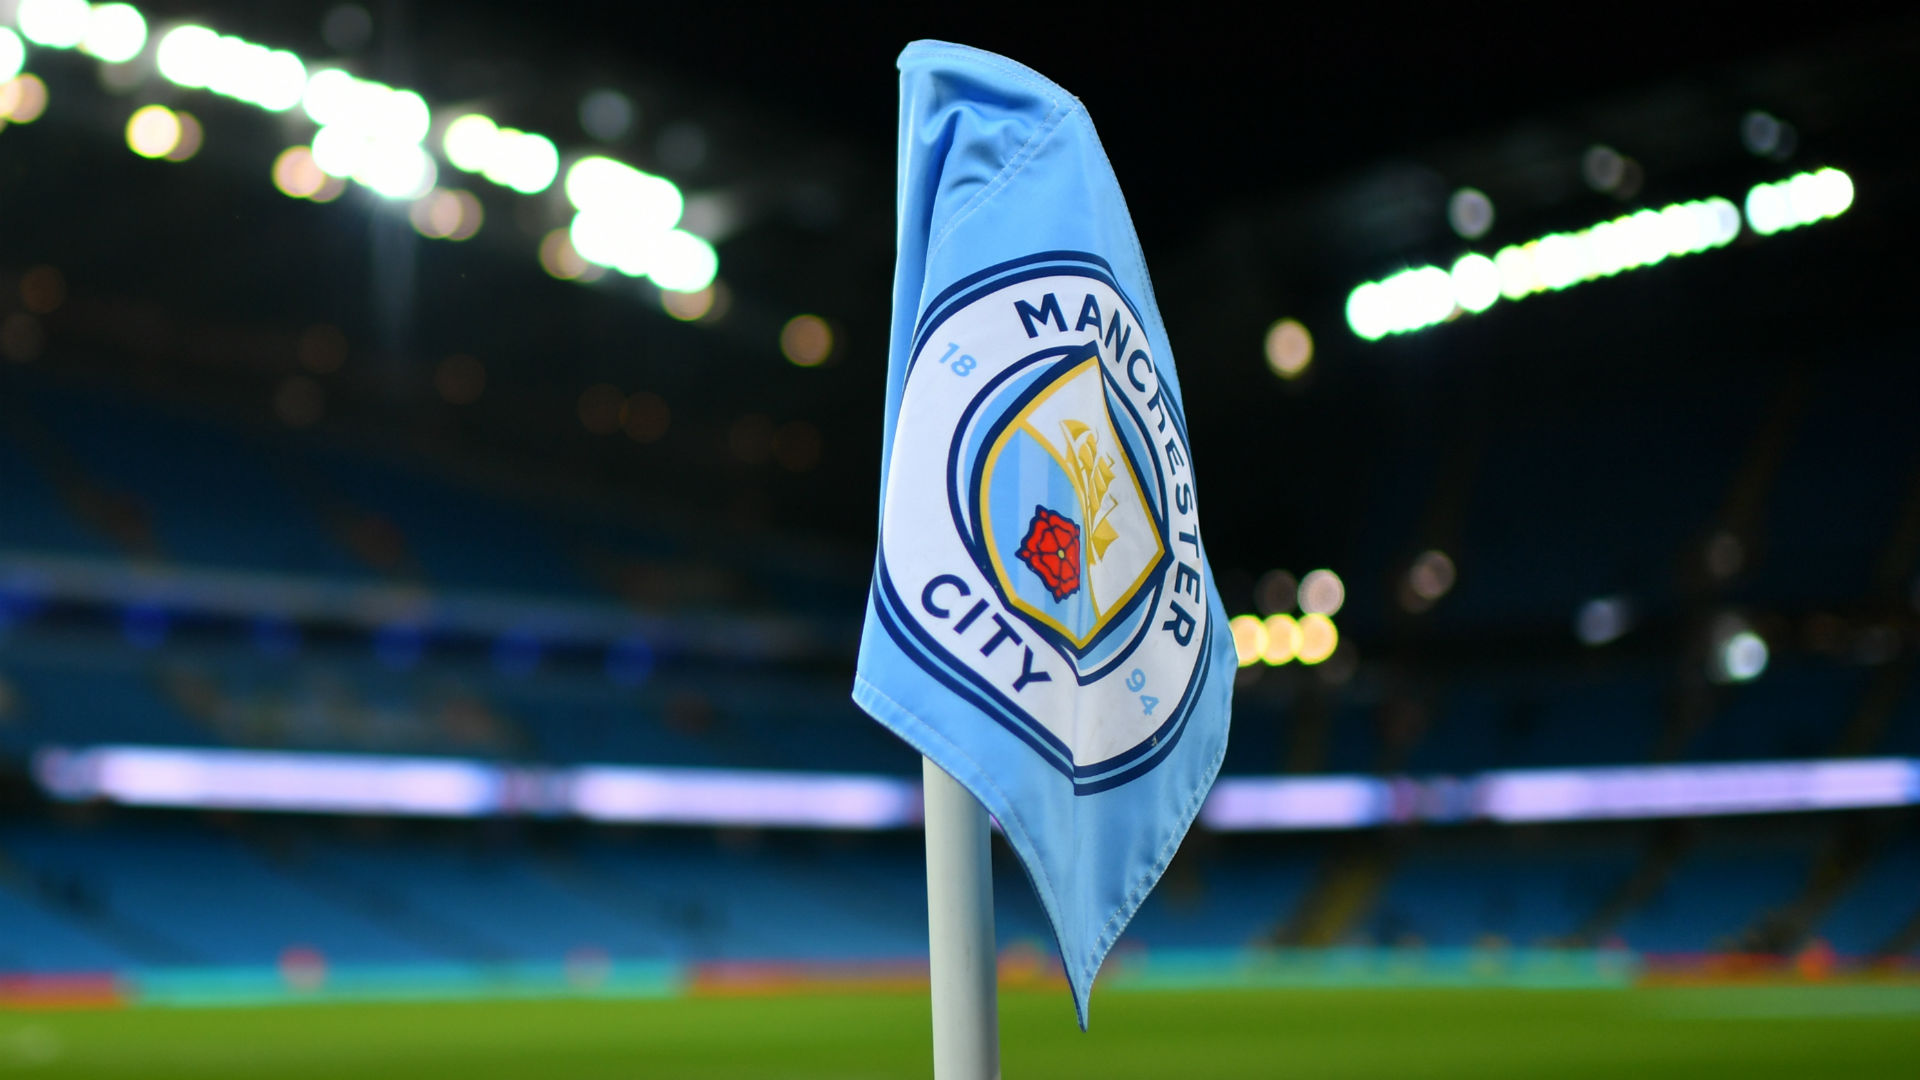 UEFA could ban Manchester City from 2019-20 Champions League over FFP